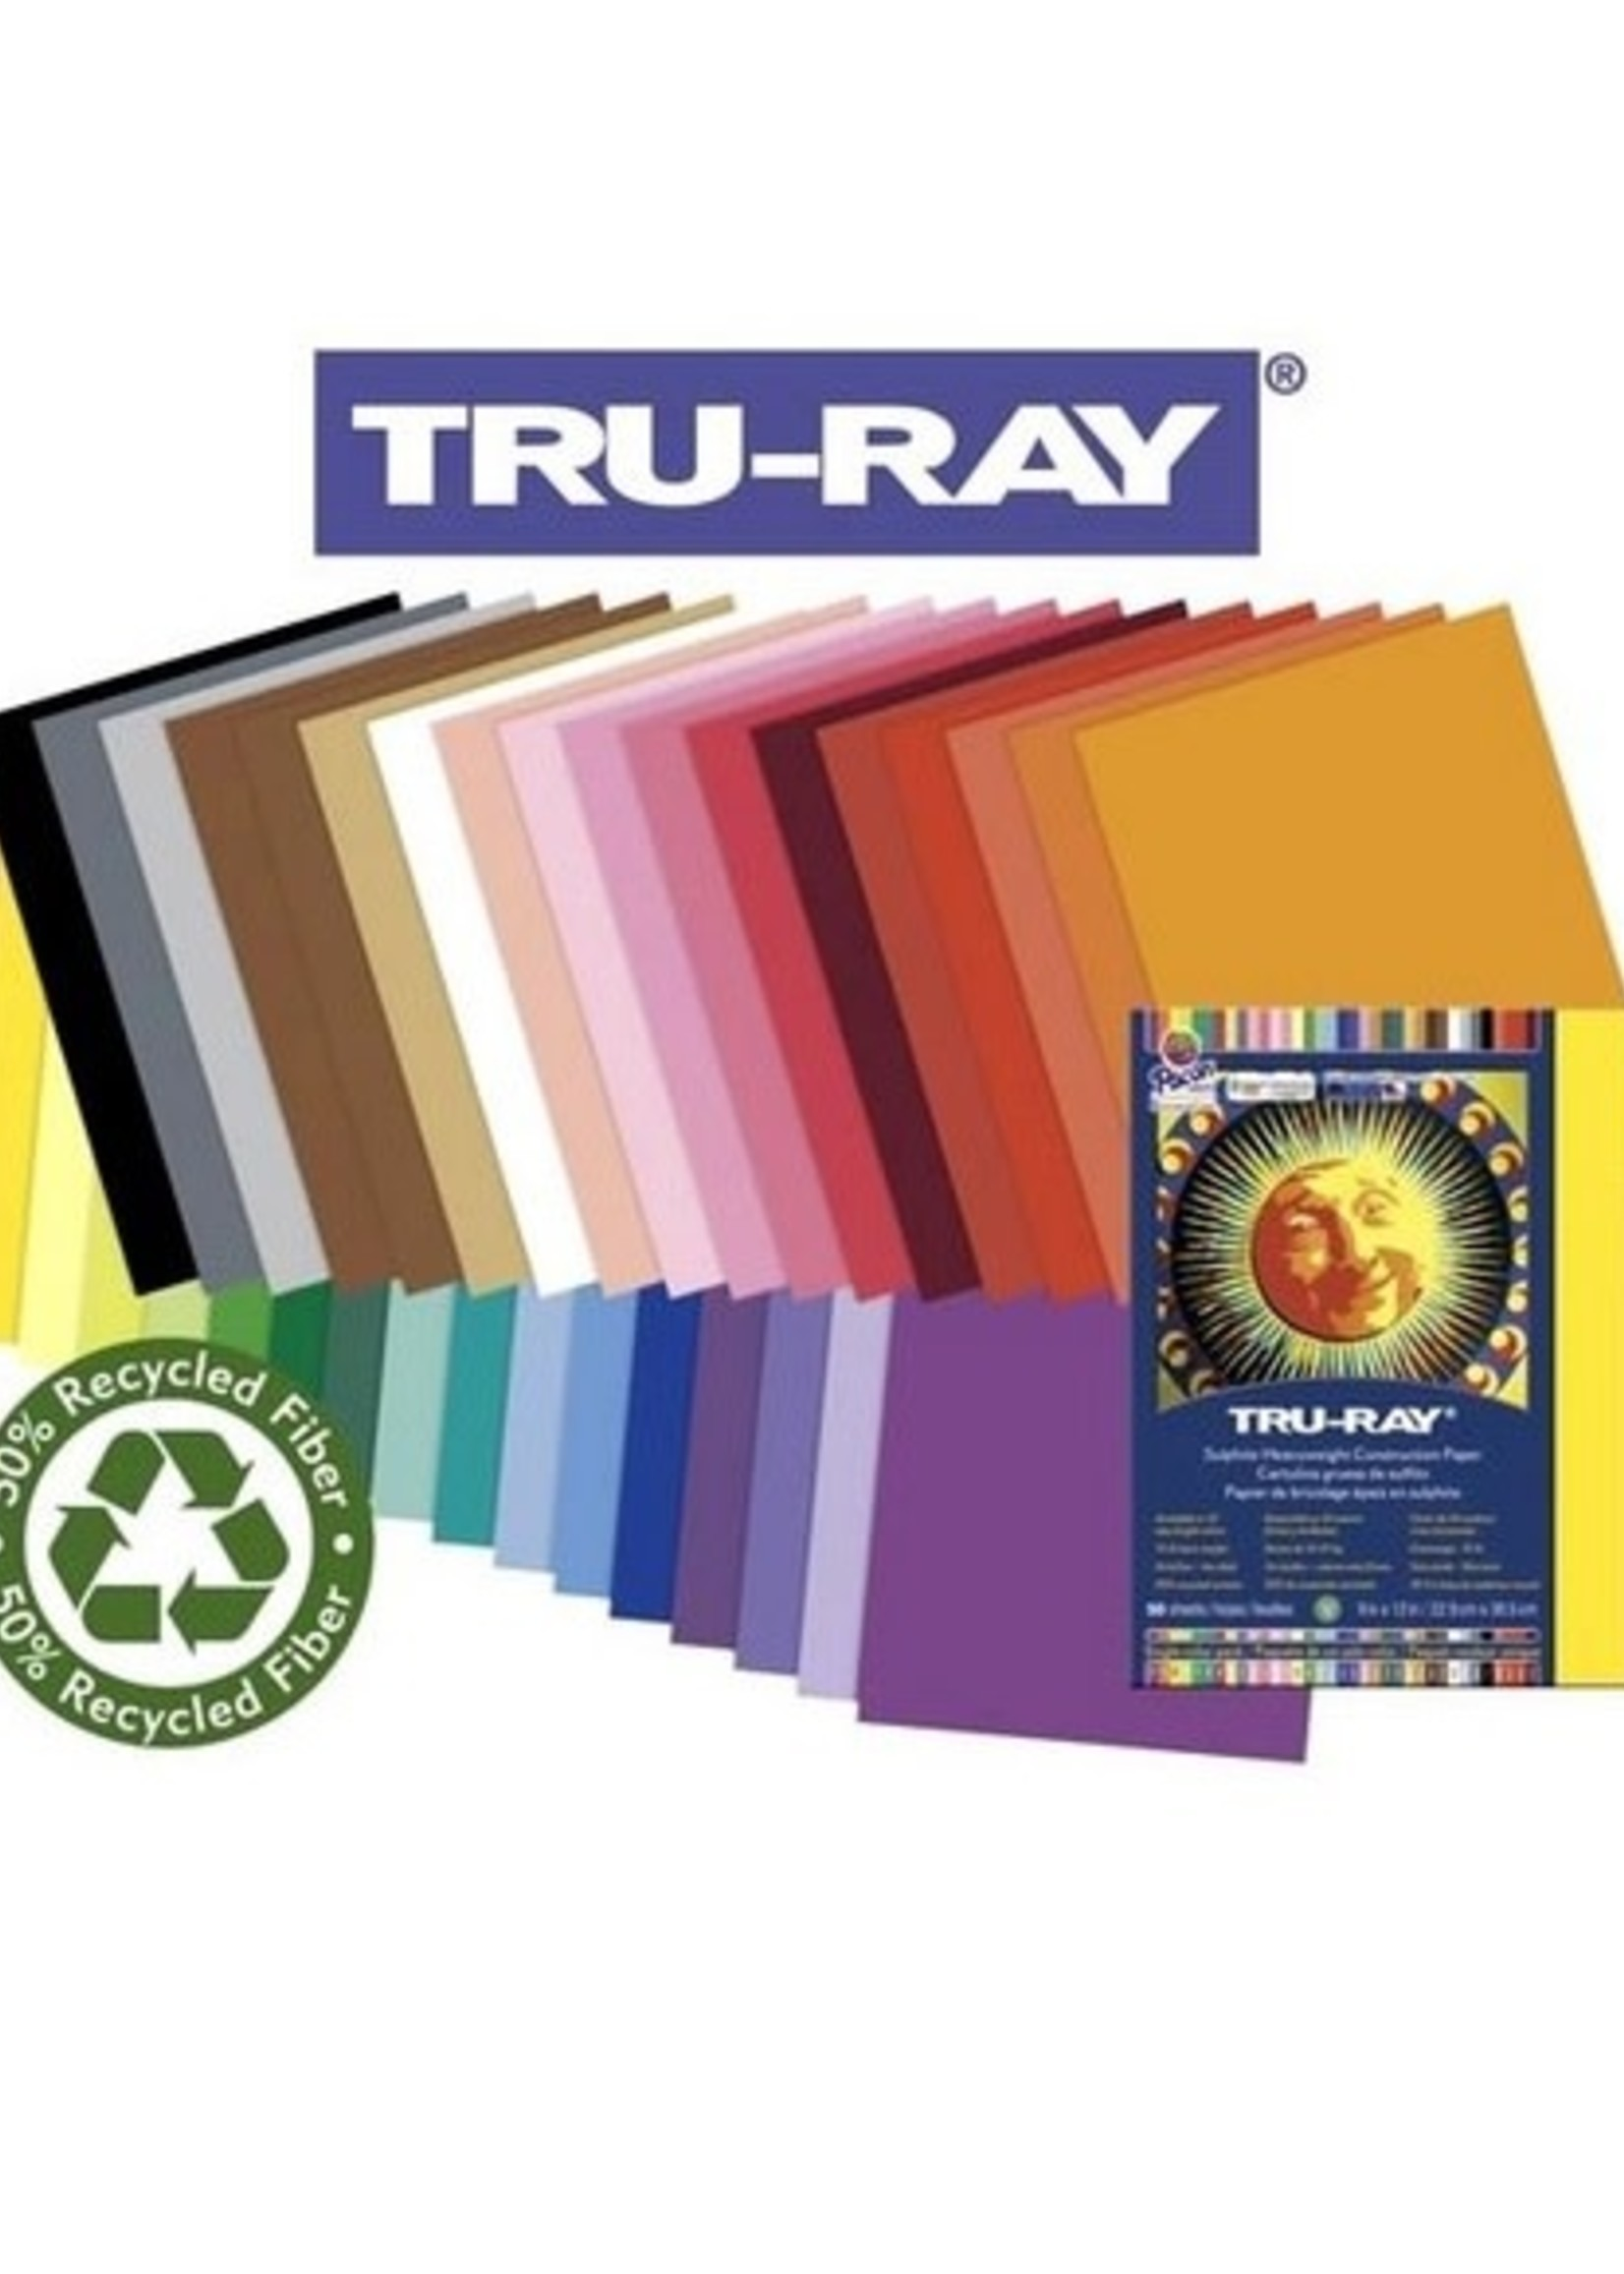 PACON/STRATHMORE TRU RAY CONSTRUCTION PAPER 50/PK